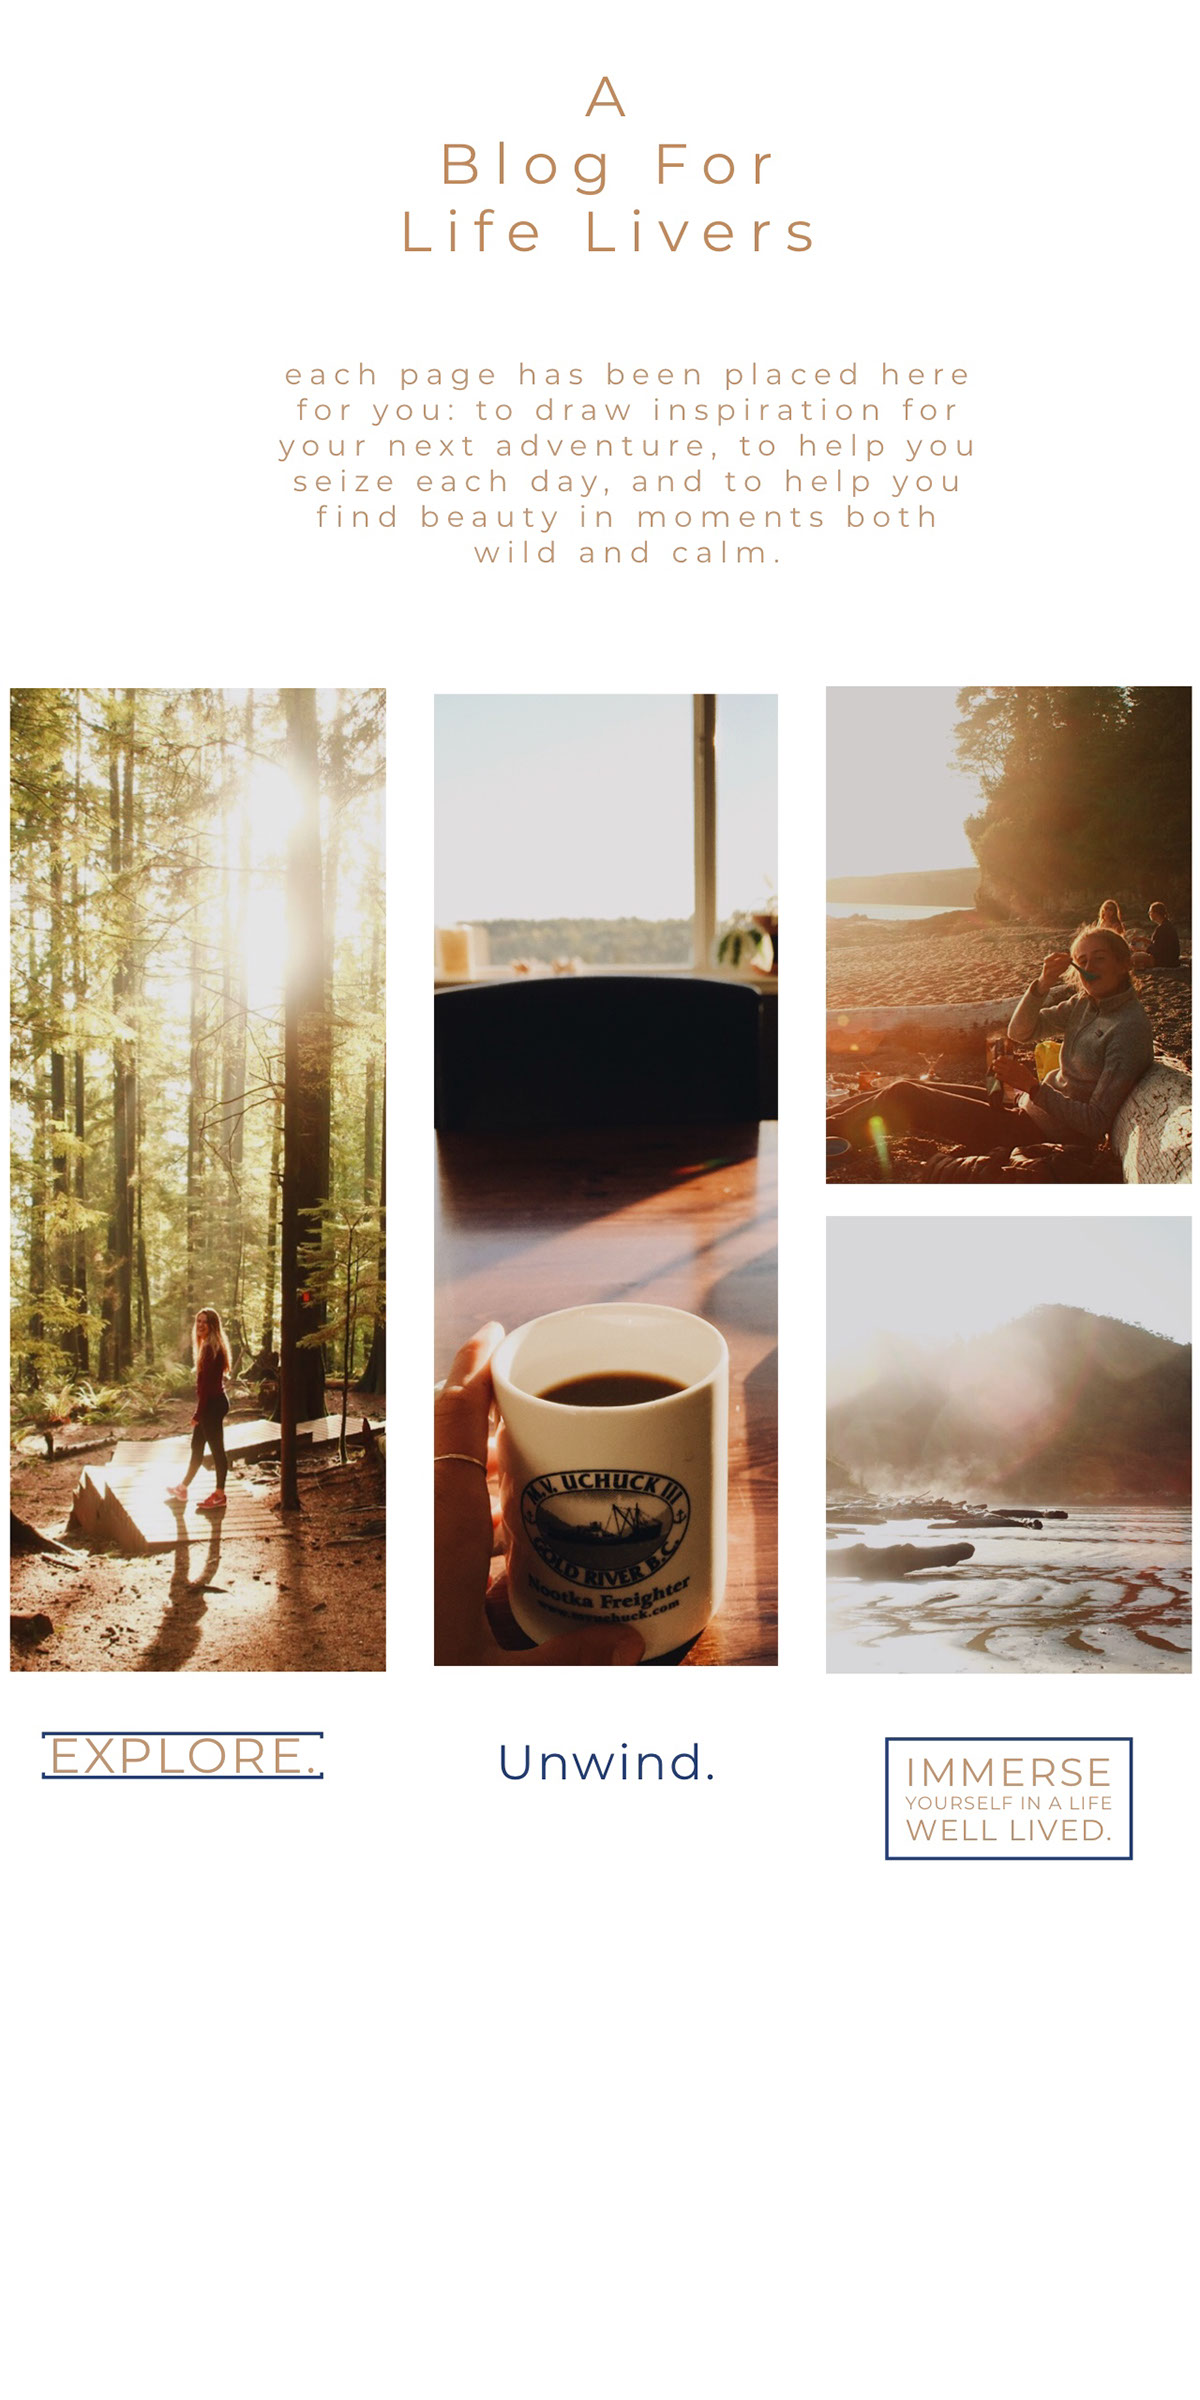 A Blog For Life Livers A Blog For Life Livers Explore. Unwind. each page has been placed here for you: to draw inspiration for your next adventure, to help you seize each day, and to help you find beauty in moments both wild and calm. Immerse yourself in a life well lived.